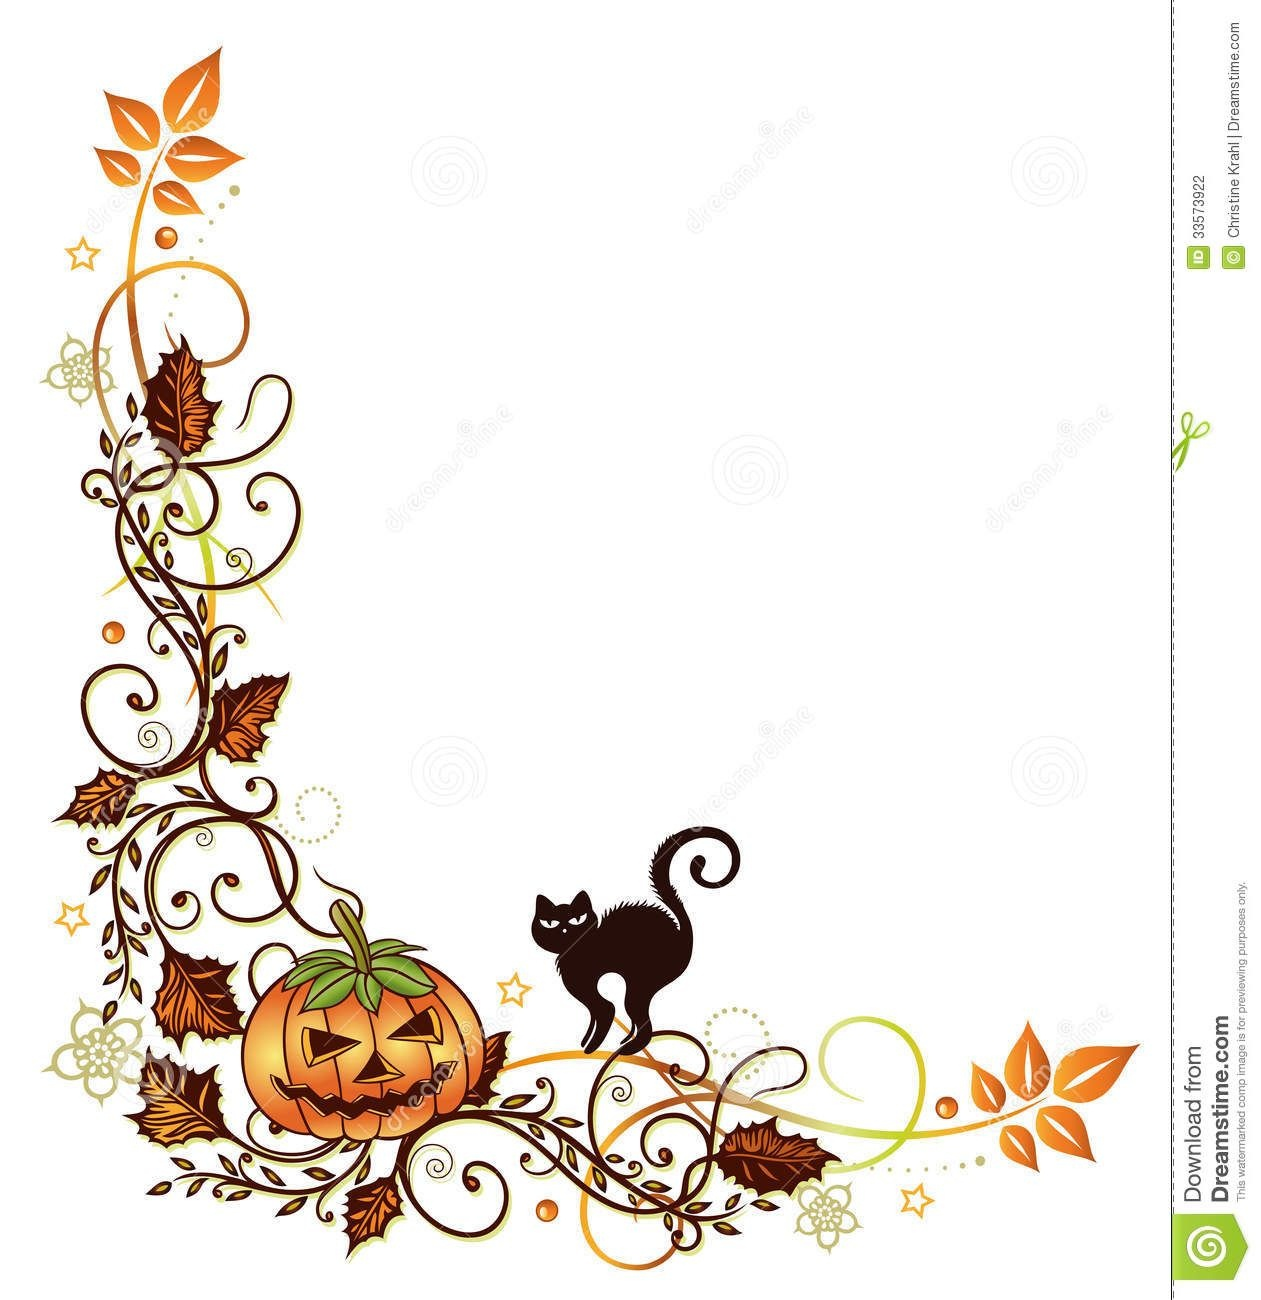 Halloween Border Clipart - Free Large Images   Halloween In 2019 - Free Printable Halloween Clipart Border